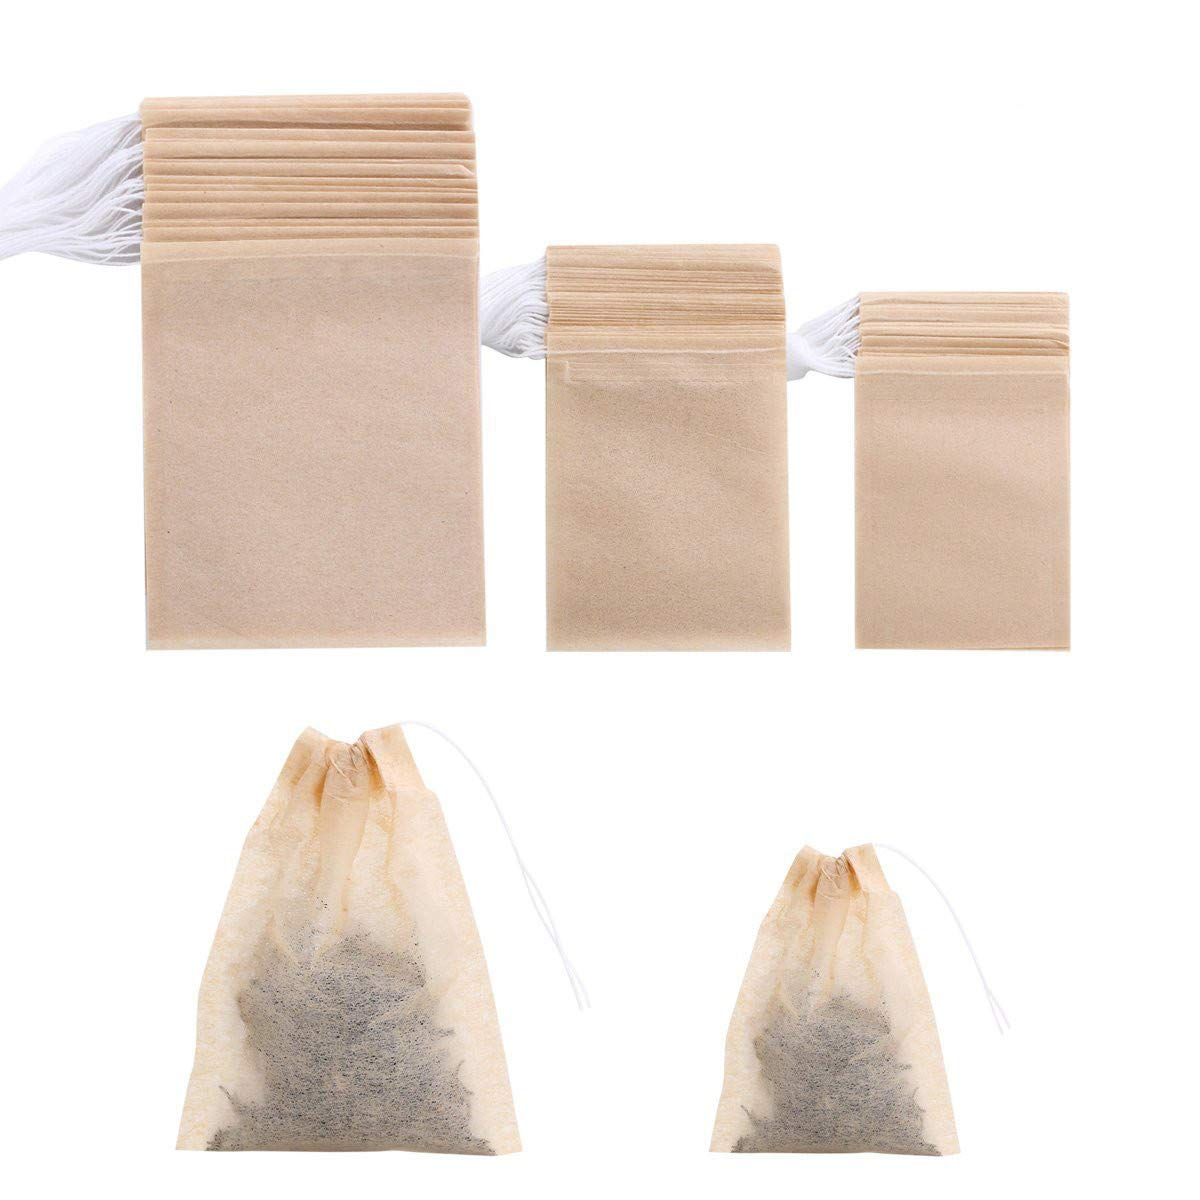 400 Pack Disposable Drawstring Tea Filter Bags Safe & Natural Unbleached Paper Tea Infuser Drawstring Empty Bag for Loose Leaf Tea (natural color)